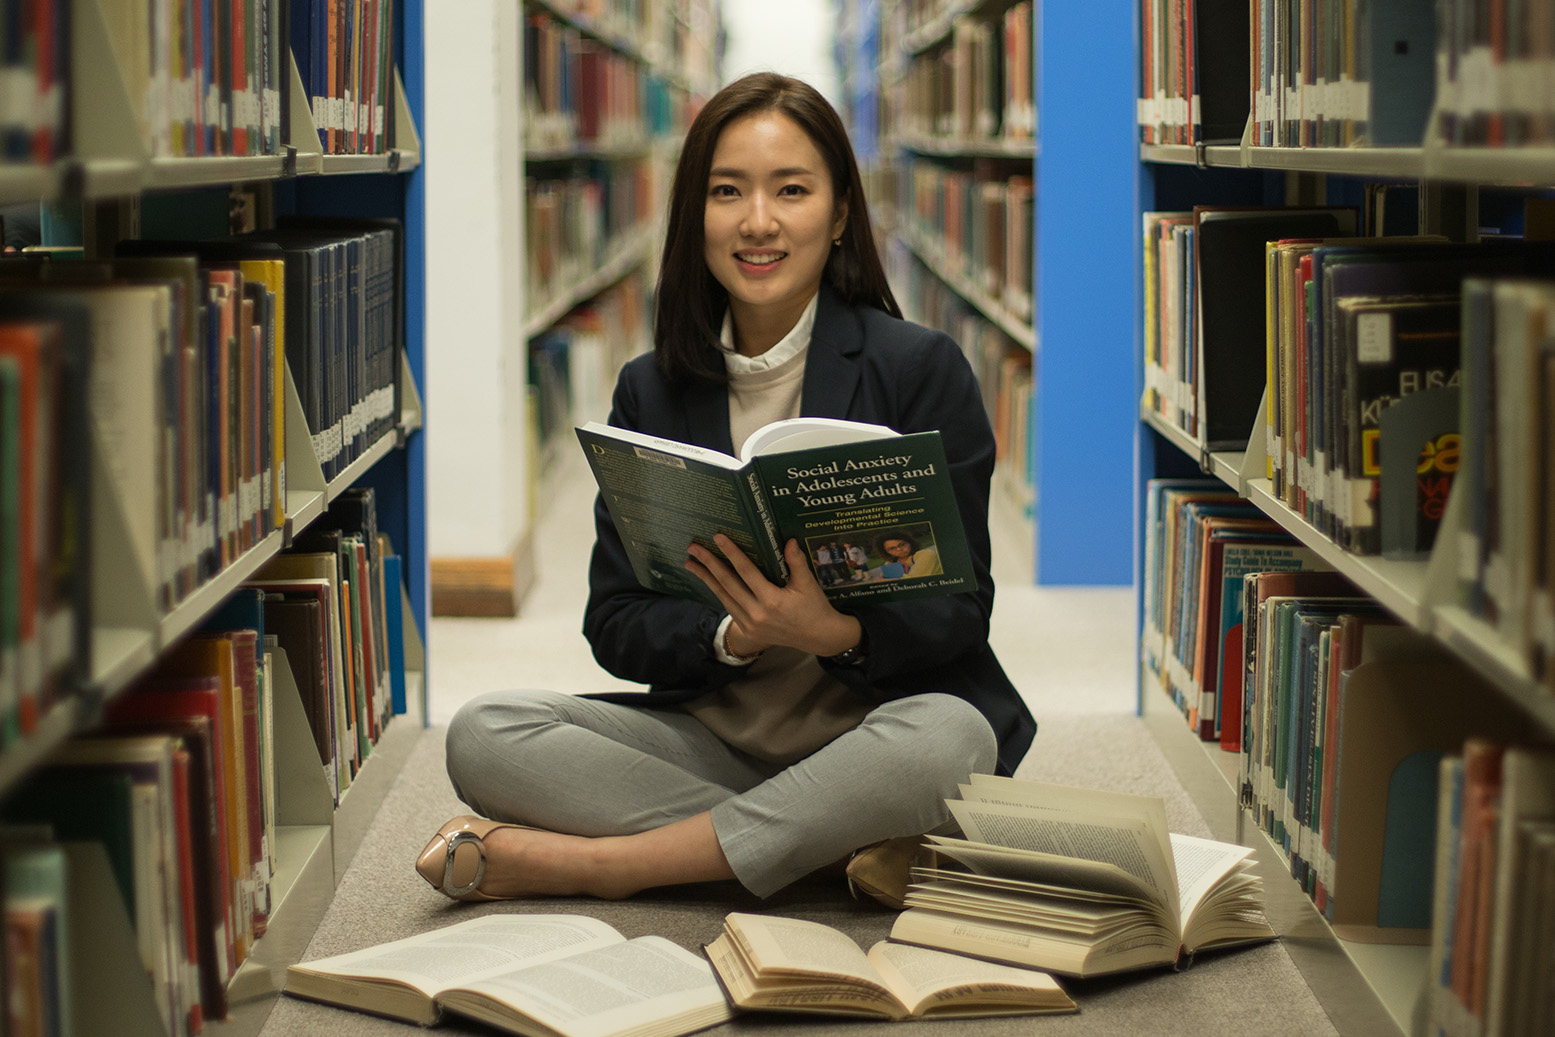 Psychology student sits in library